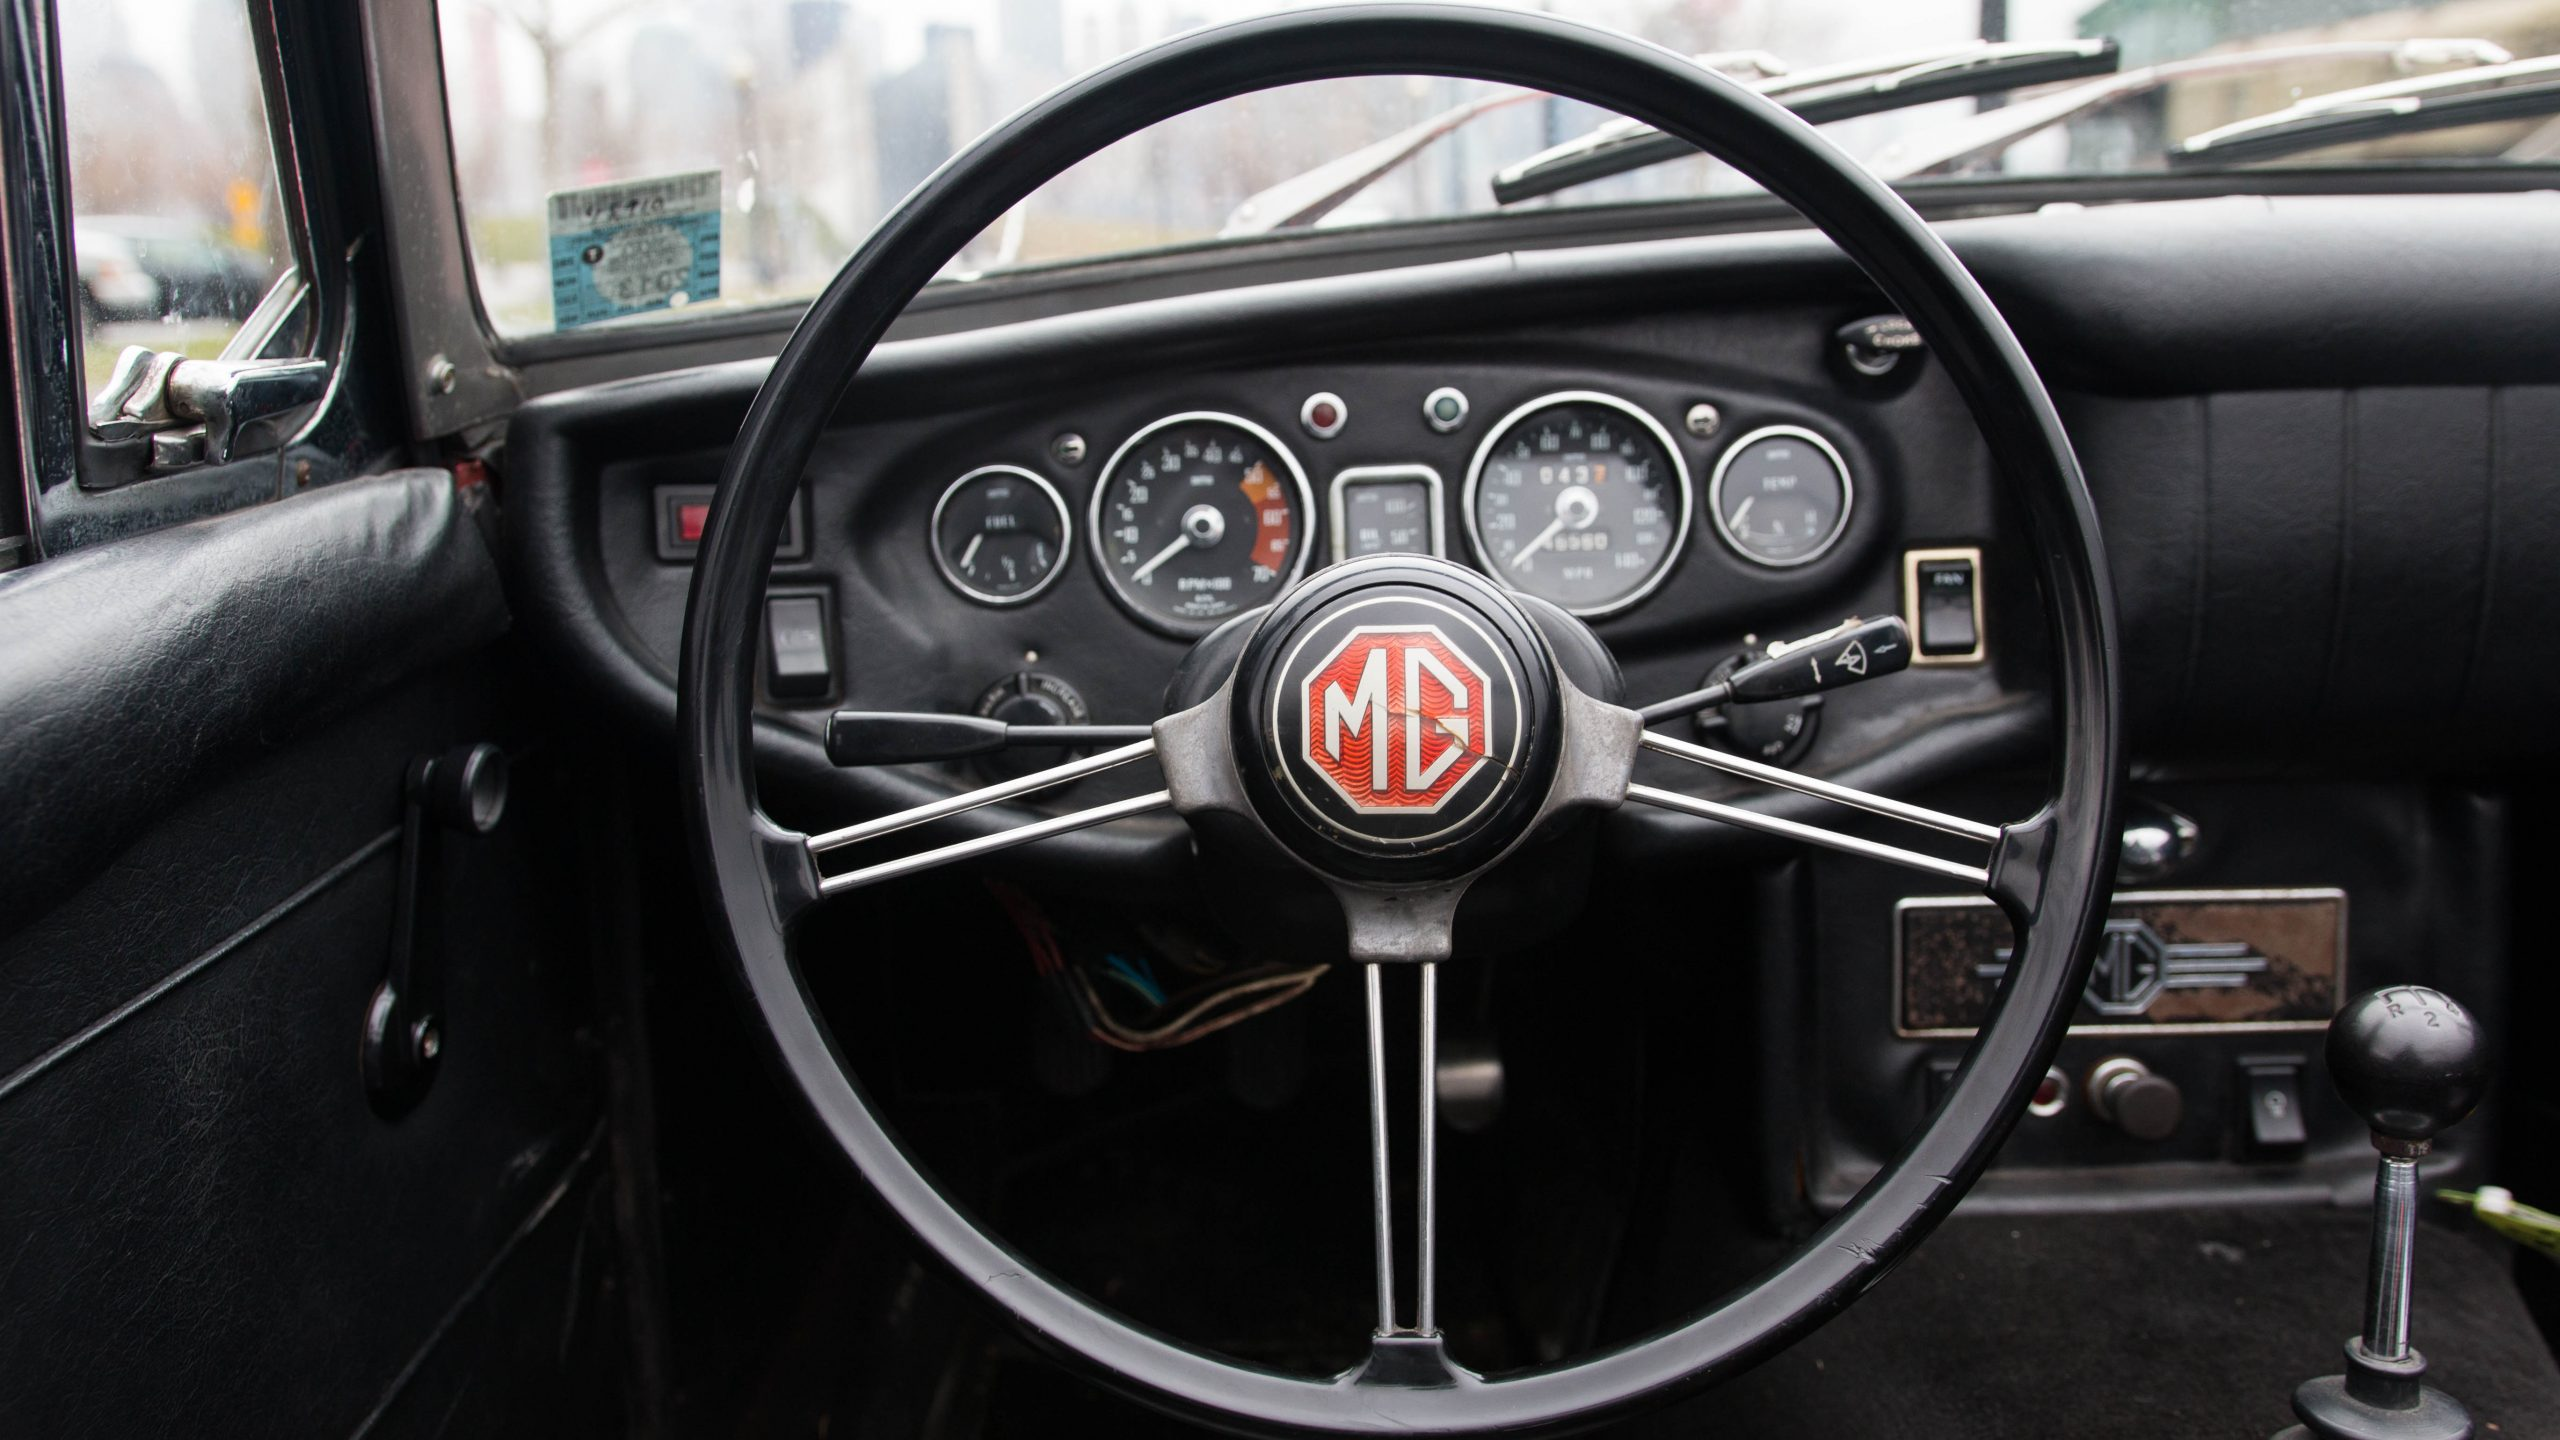 1969 MG MGC interior steering wheel detail